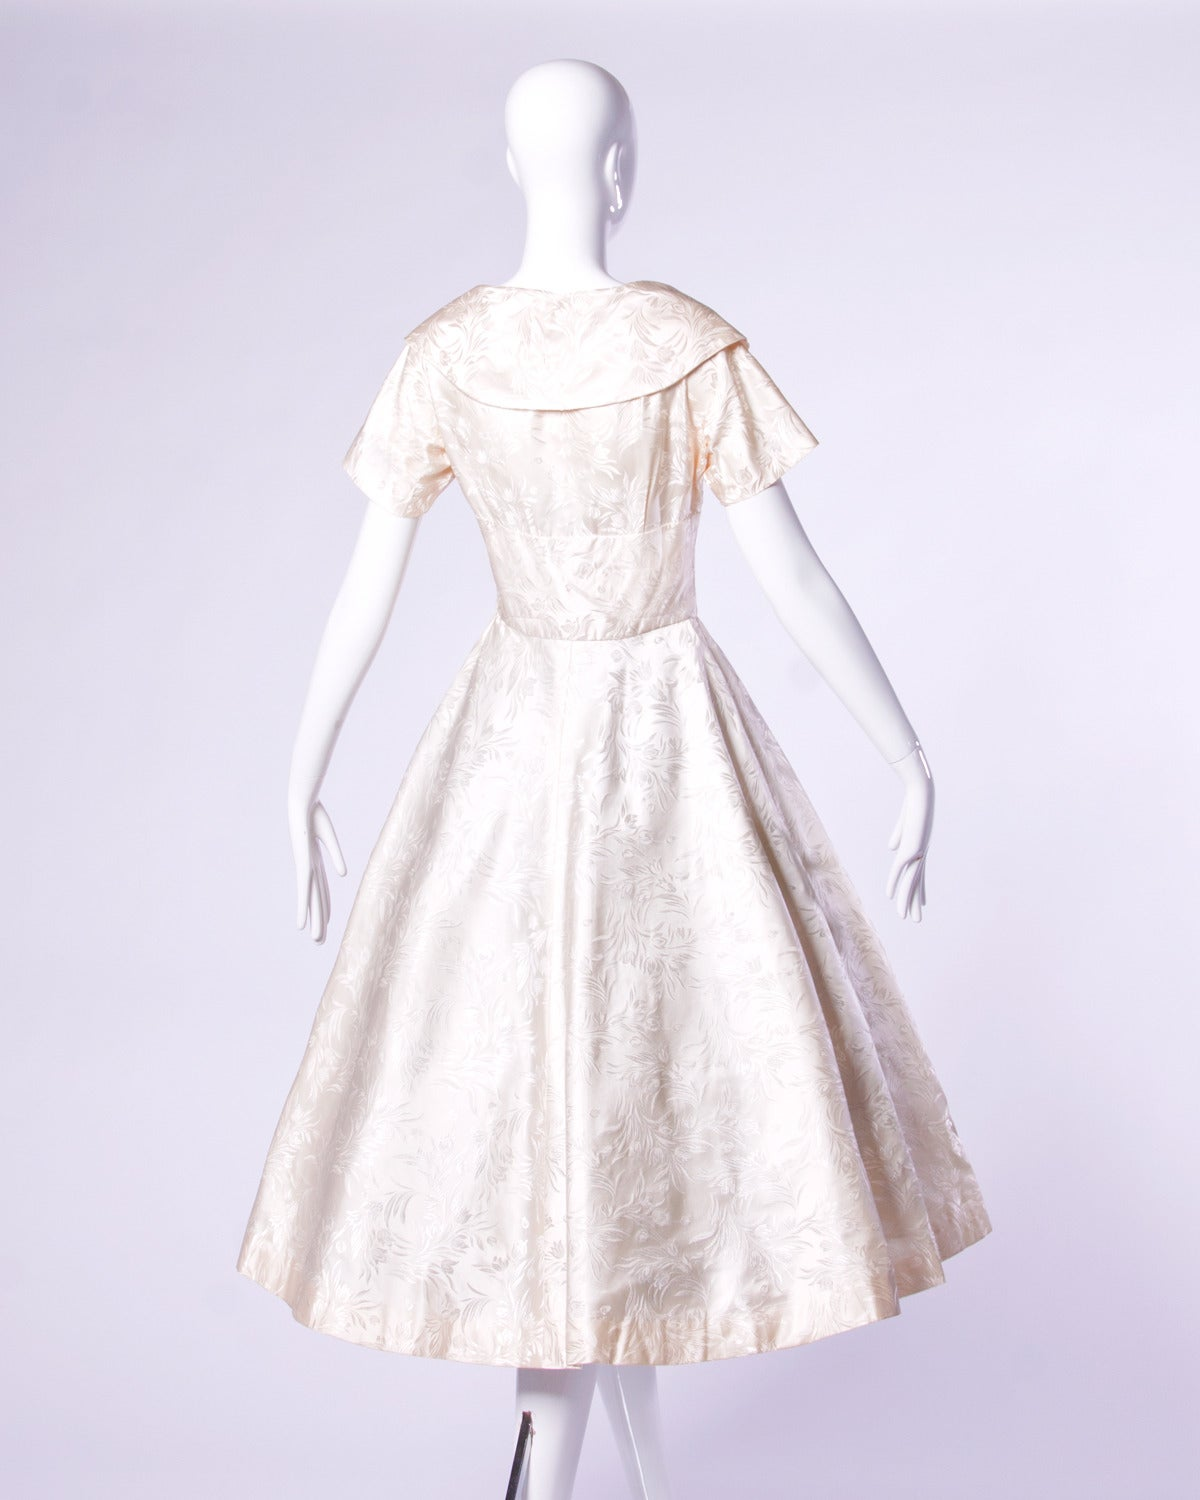 Women's Vintage 1950s 50s Silk Satin Ivory Full Sweep Wedding or Party Dress For Sale